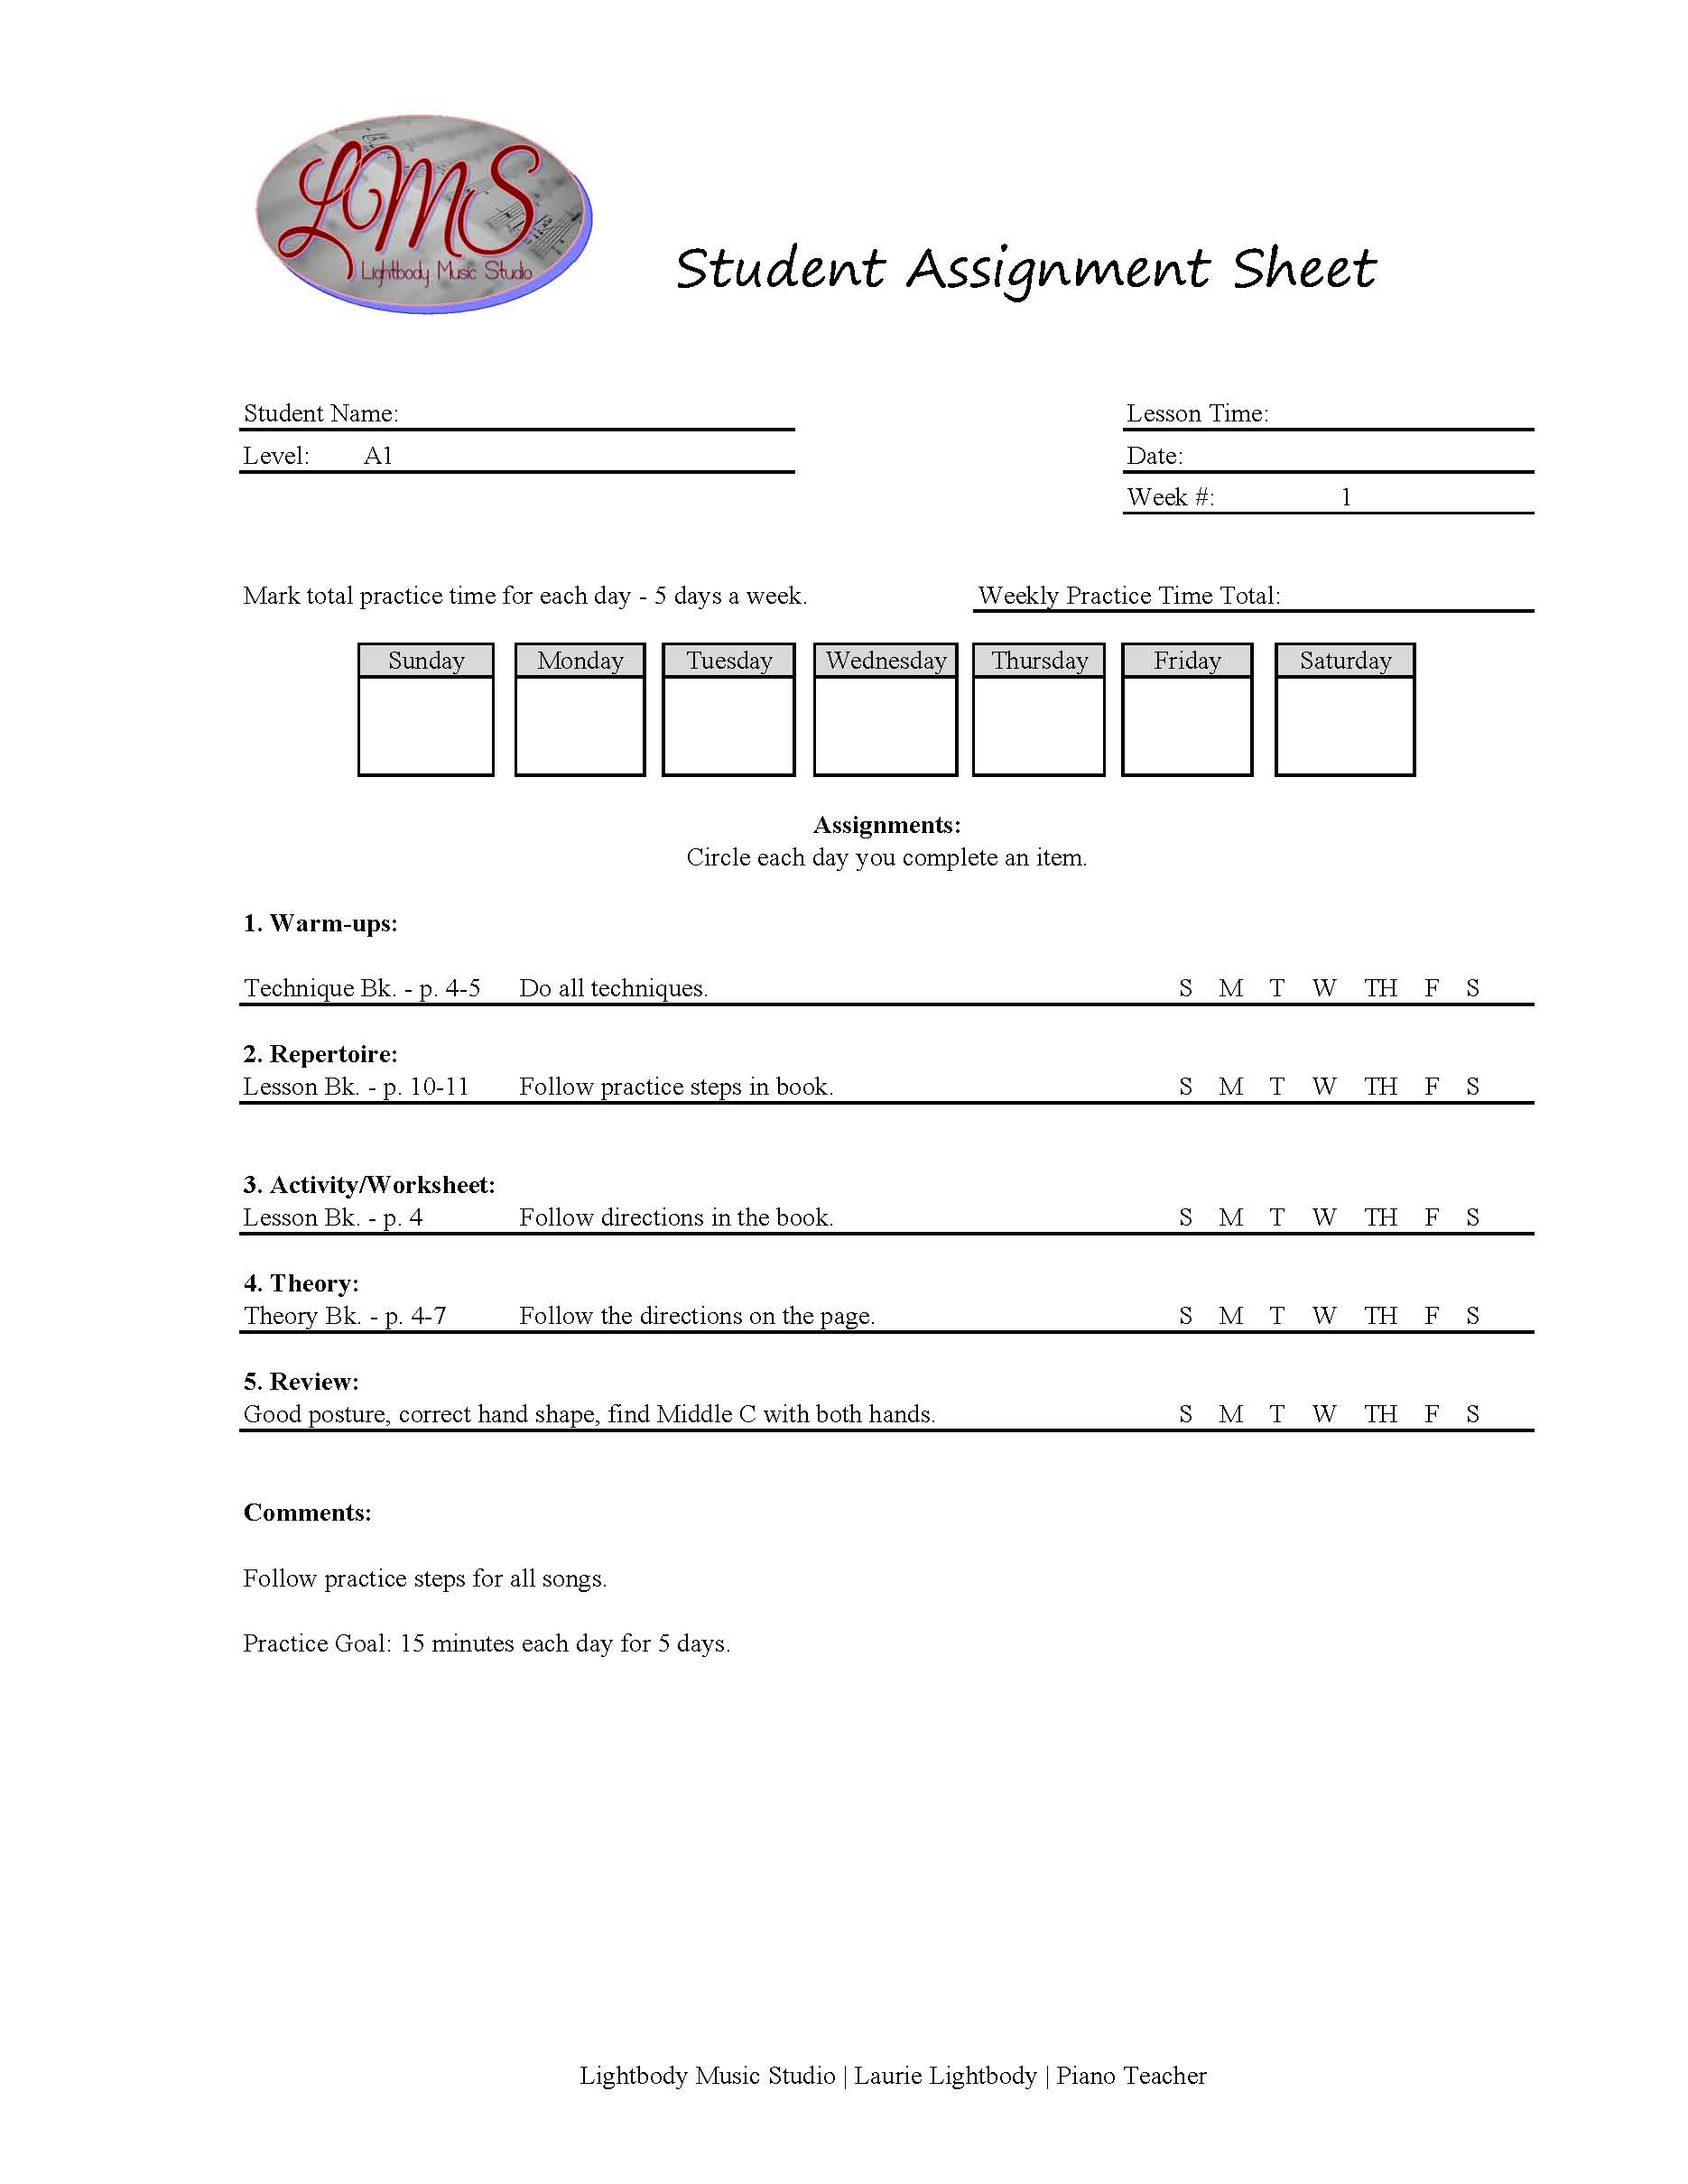 assignment sheets Assignment sheets assignment sheets - title ebooks : assignment sheets - category : kindle and ebooks pdf - author : ~ unidentified - isbn785458 - file type .